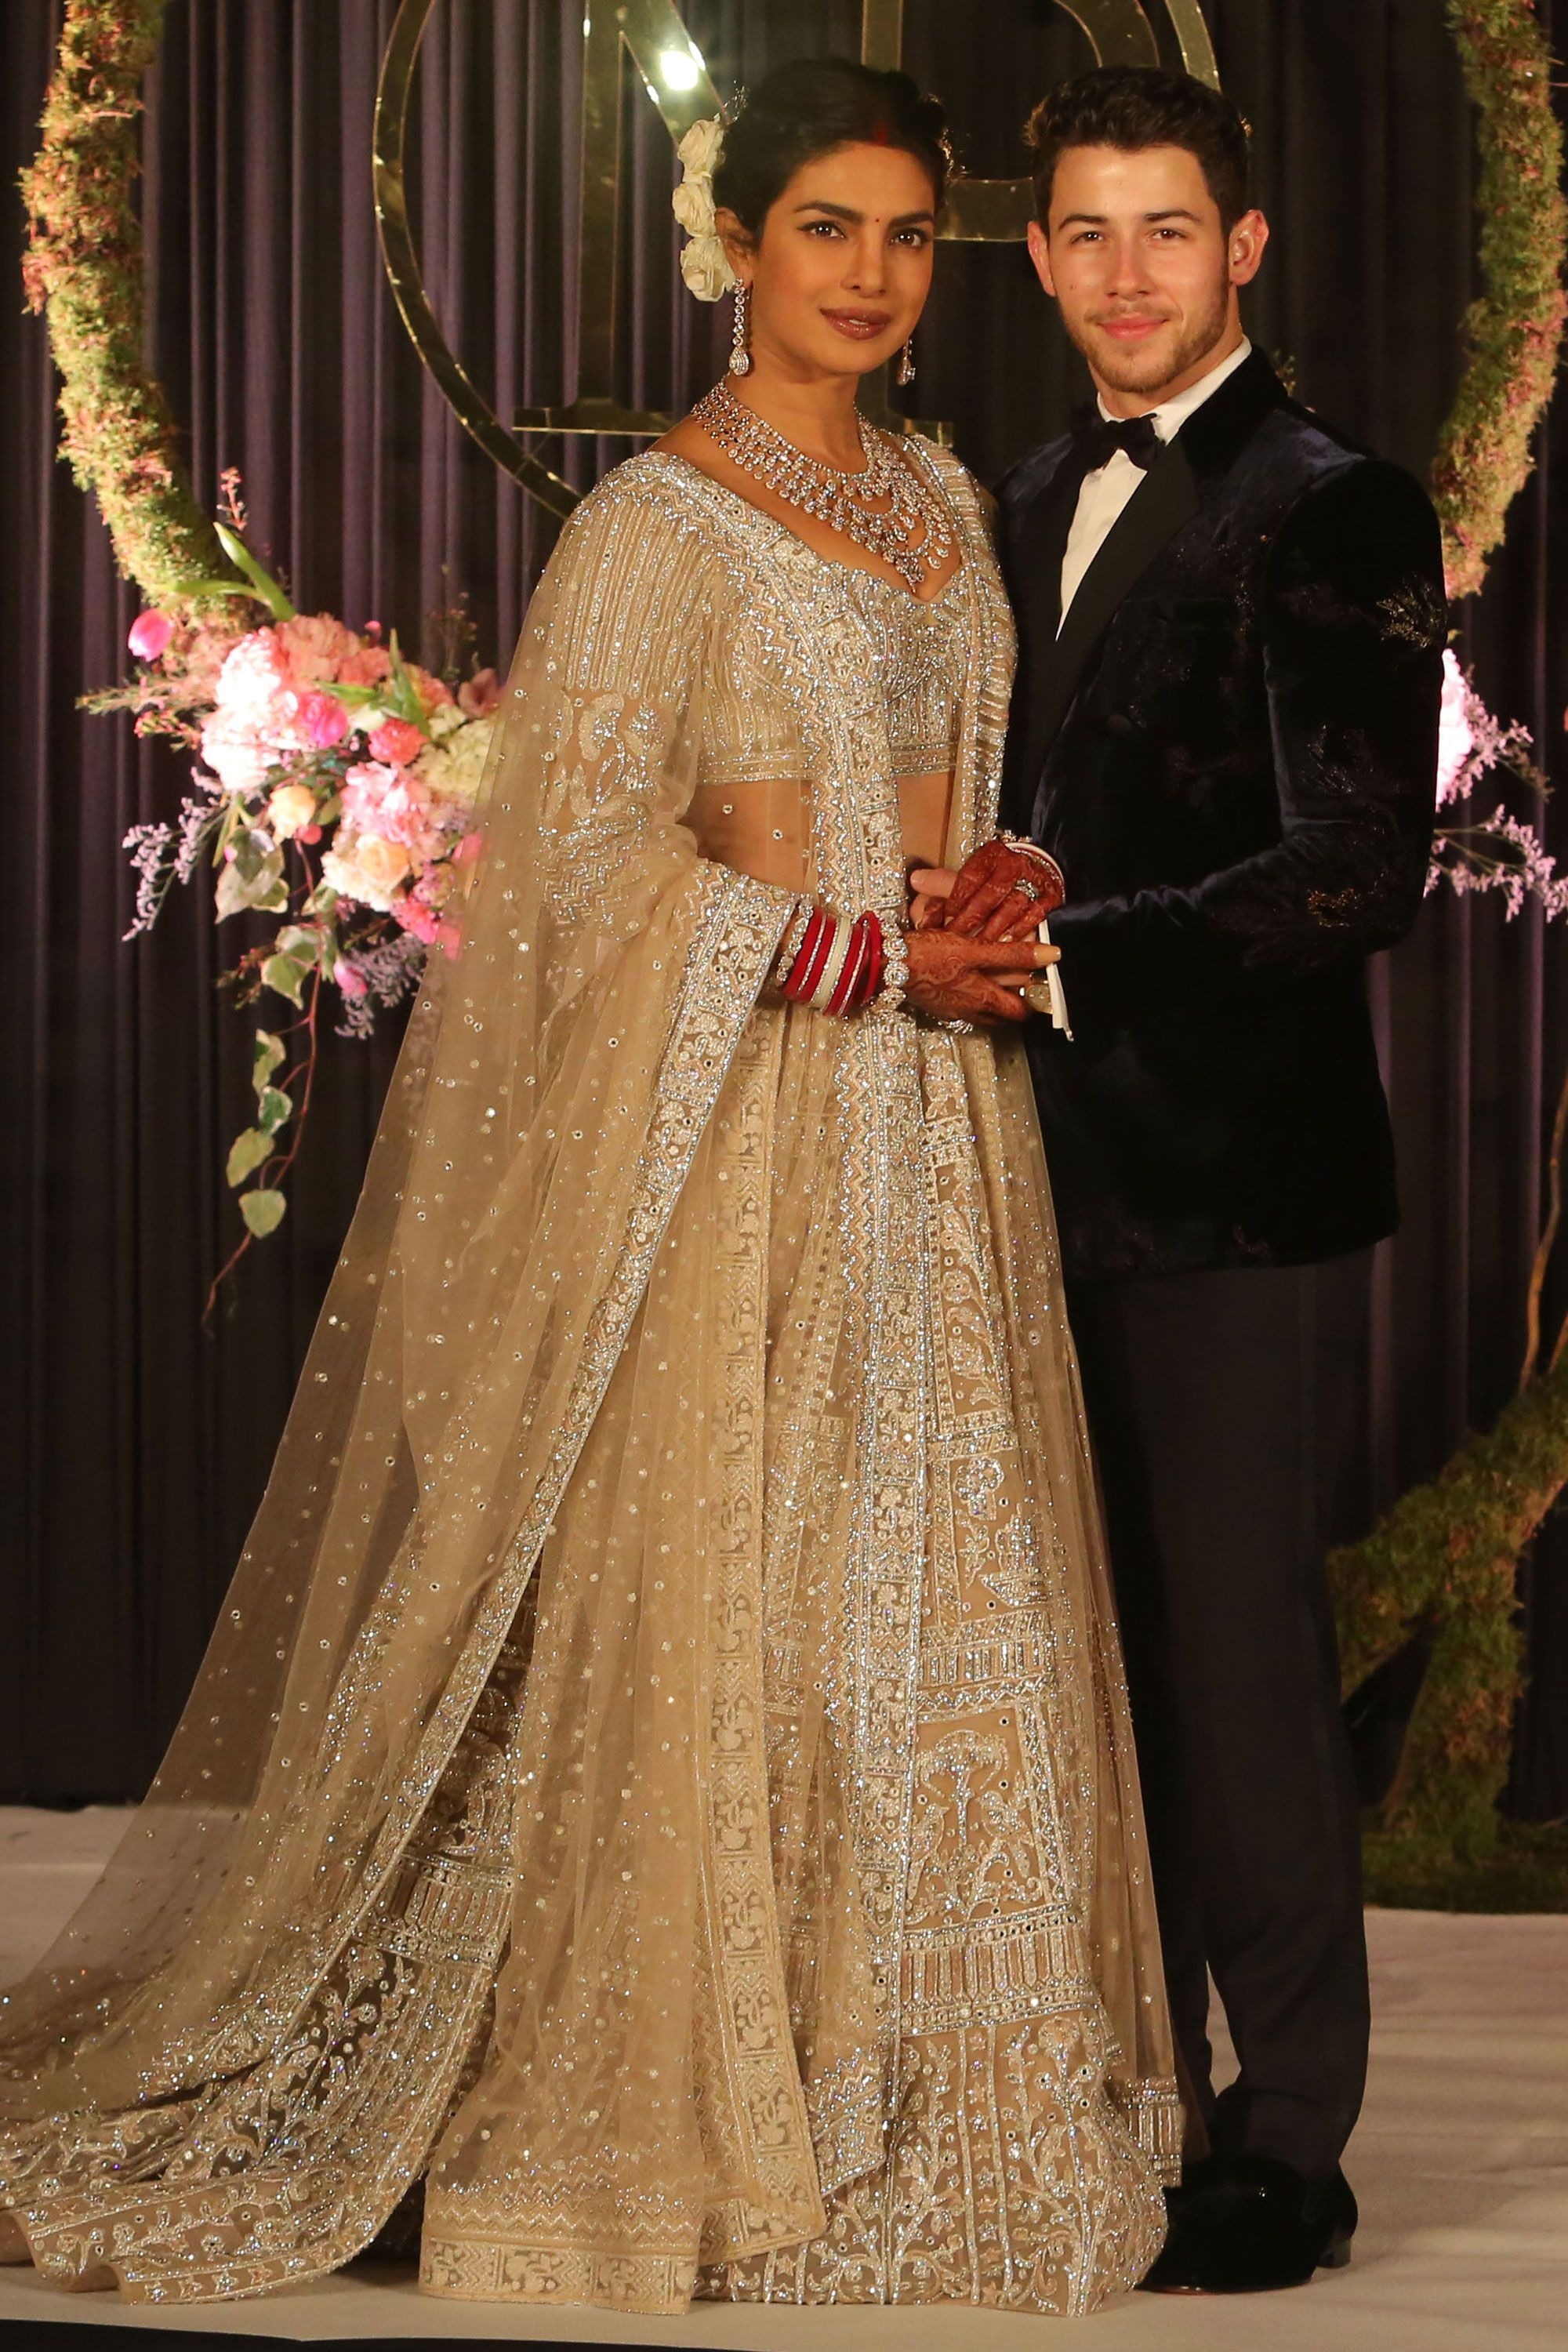 Every outfit Priyanka Chopra wore during her wedding